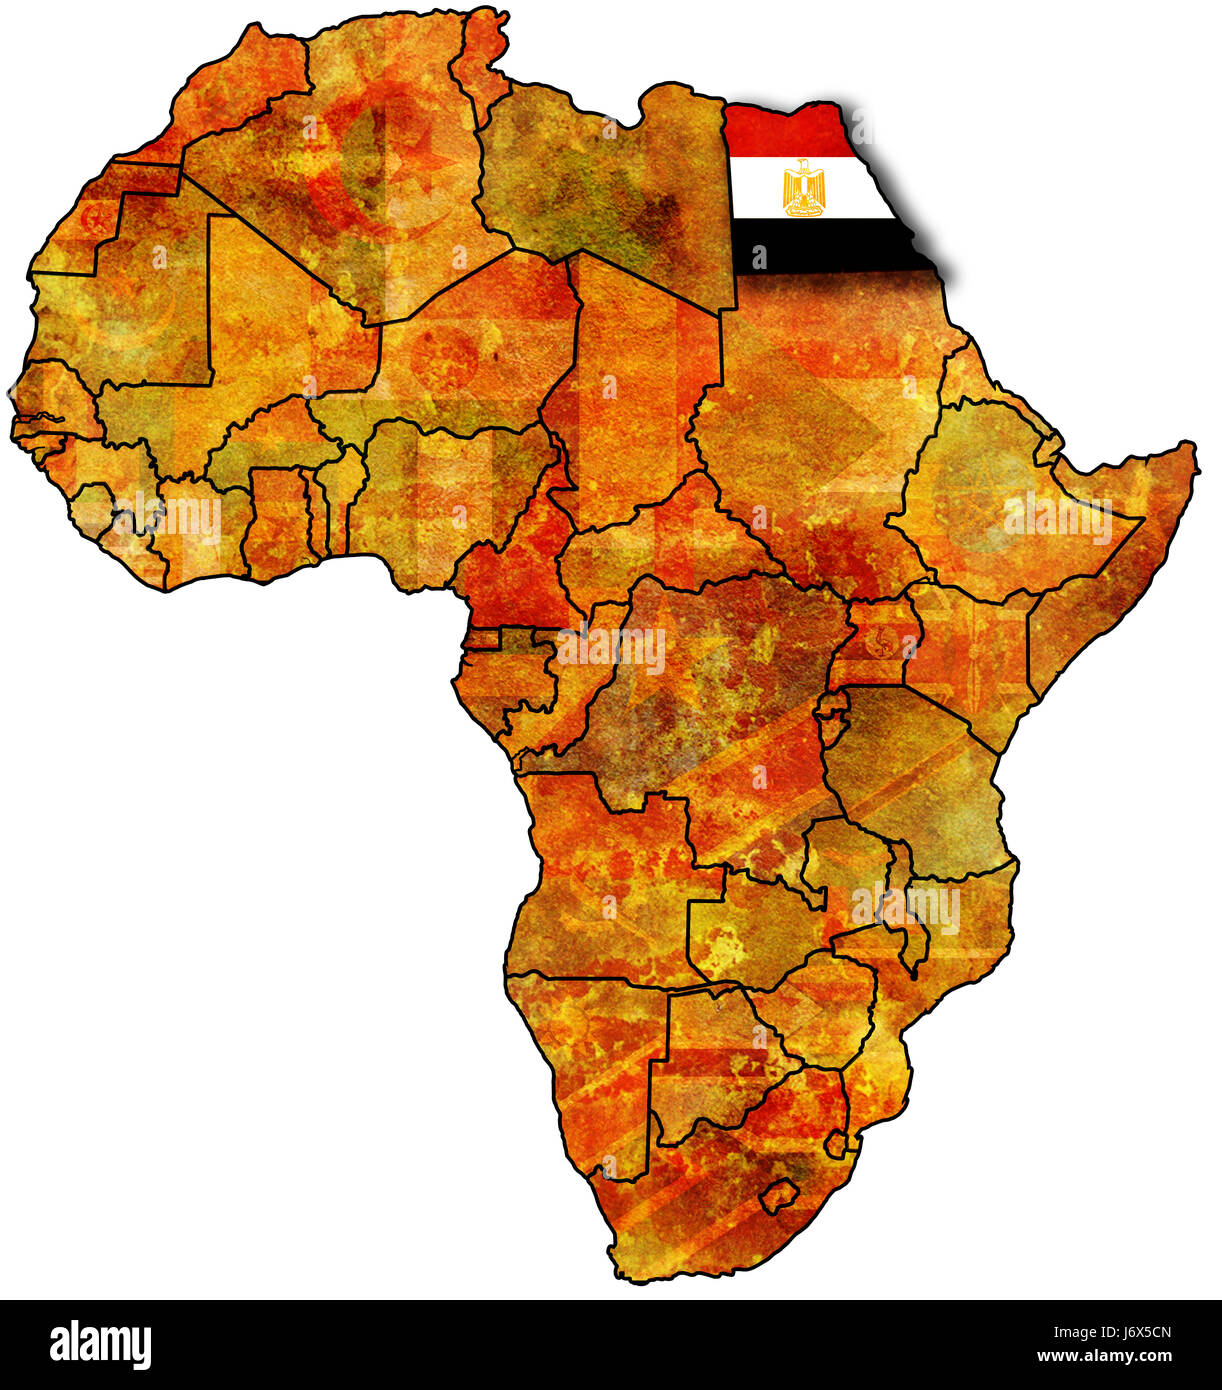 Map Of Egypt And Africa egypt on africa map Stock Photo: 141945909   Alamy